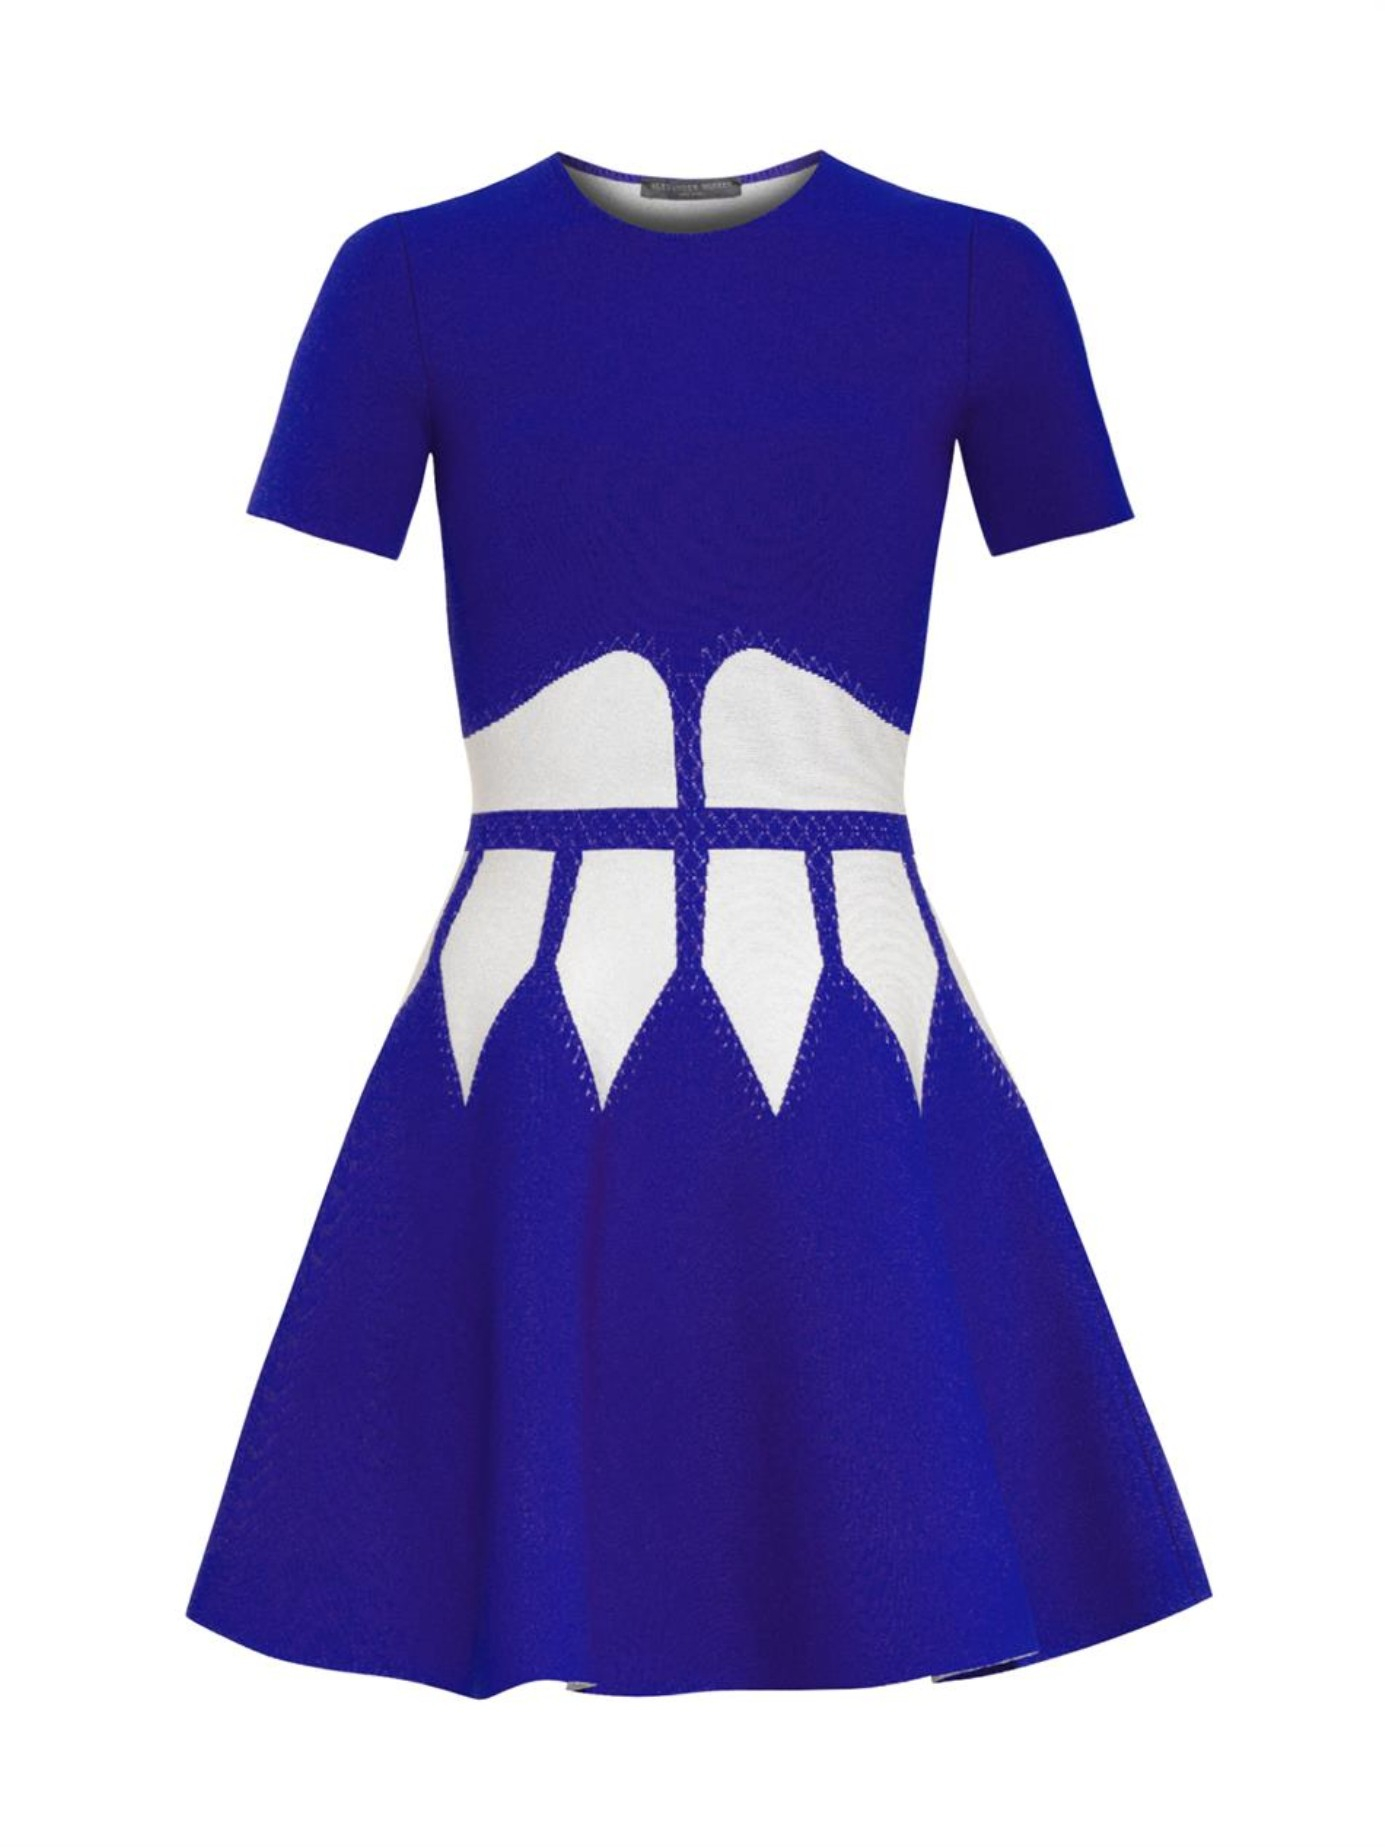 https://ufonomore.com/recently-added/alexander-mcqueen-corset-intarsia-stretch-knit-dress-in-blue